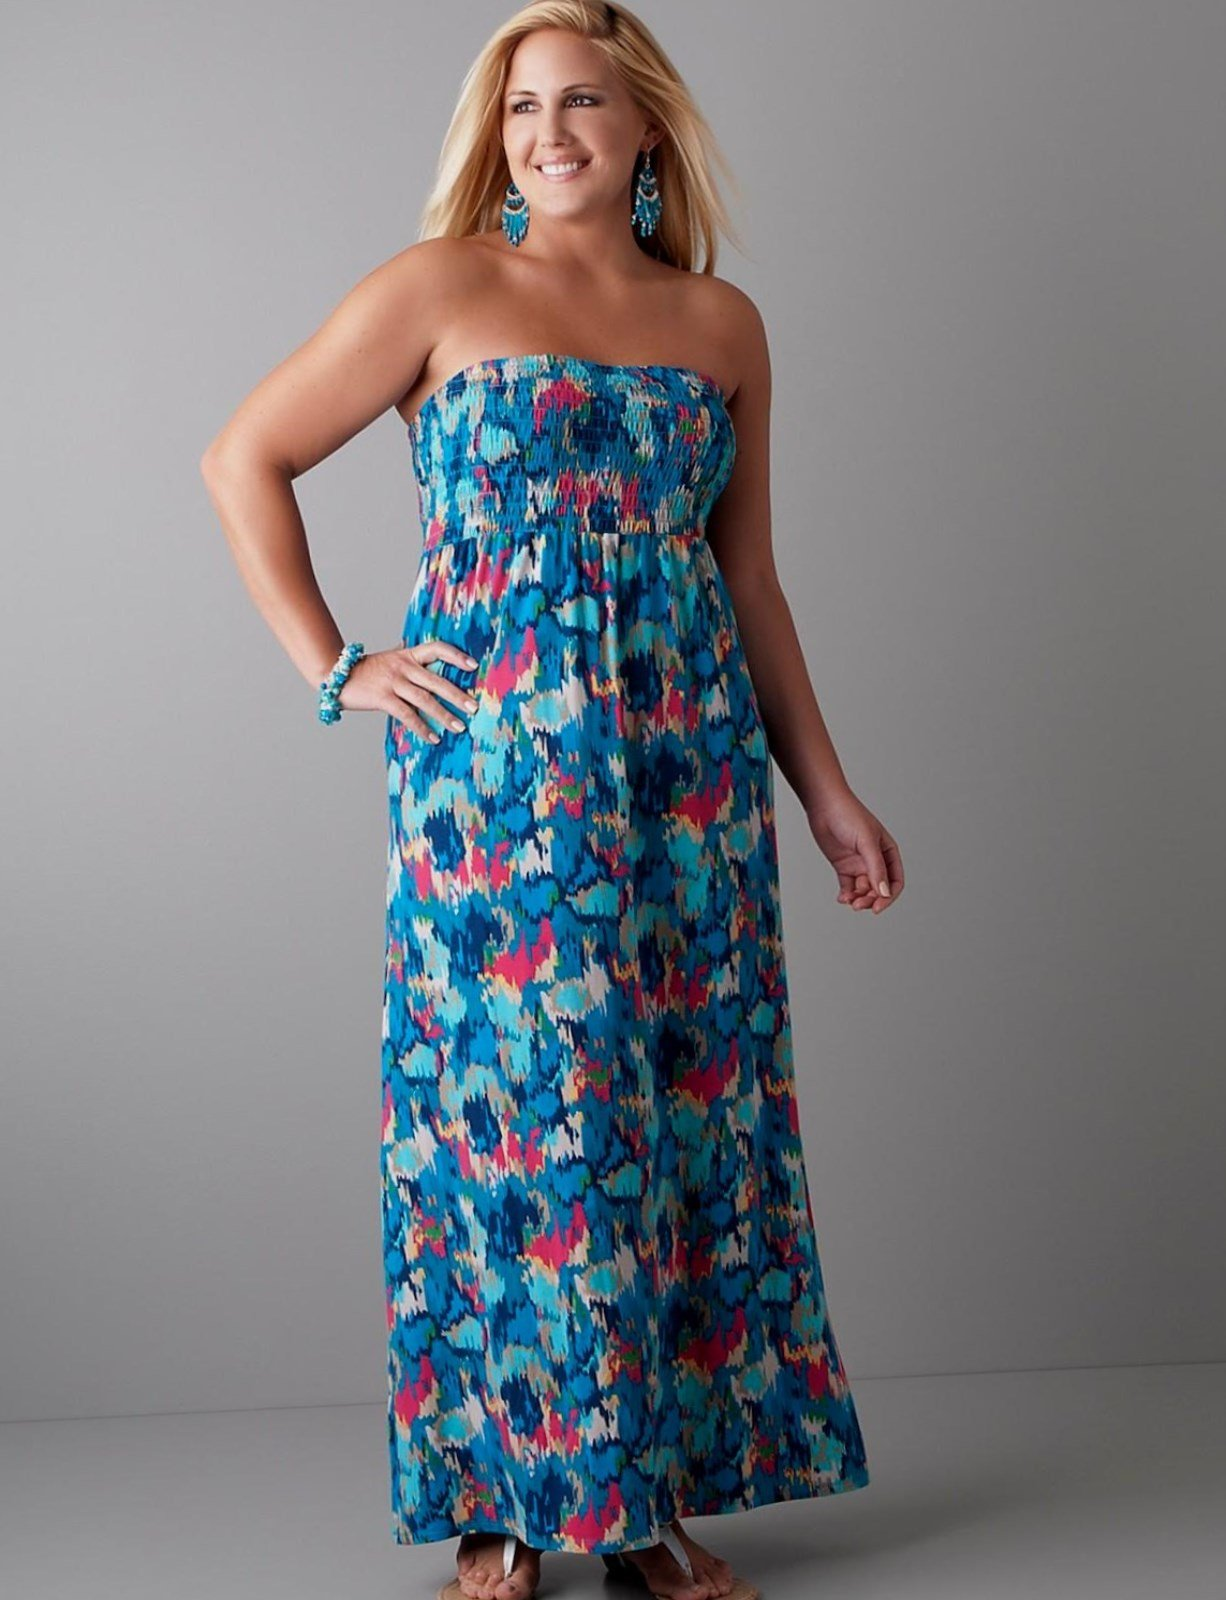 Best Plus size beach maxi dresses - Trends 2019